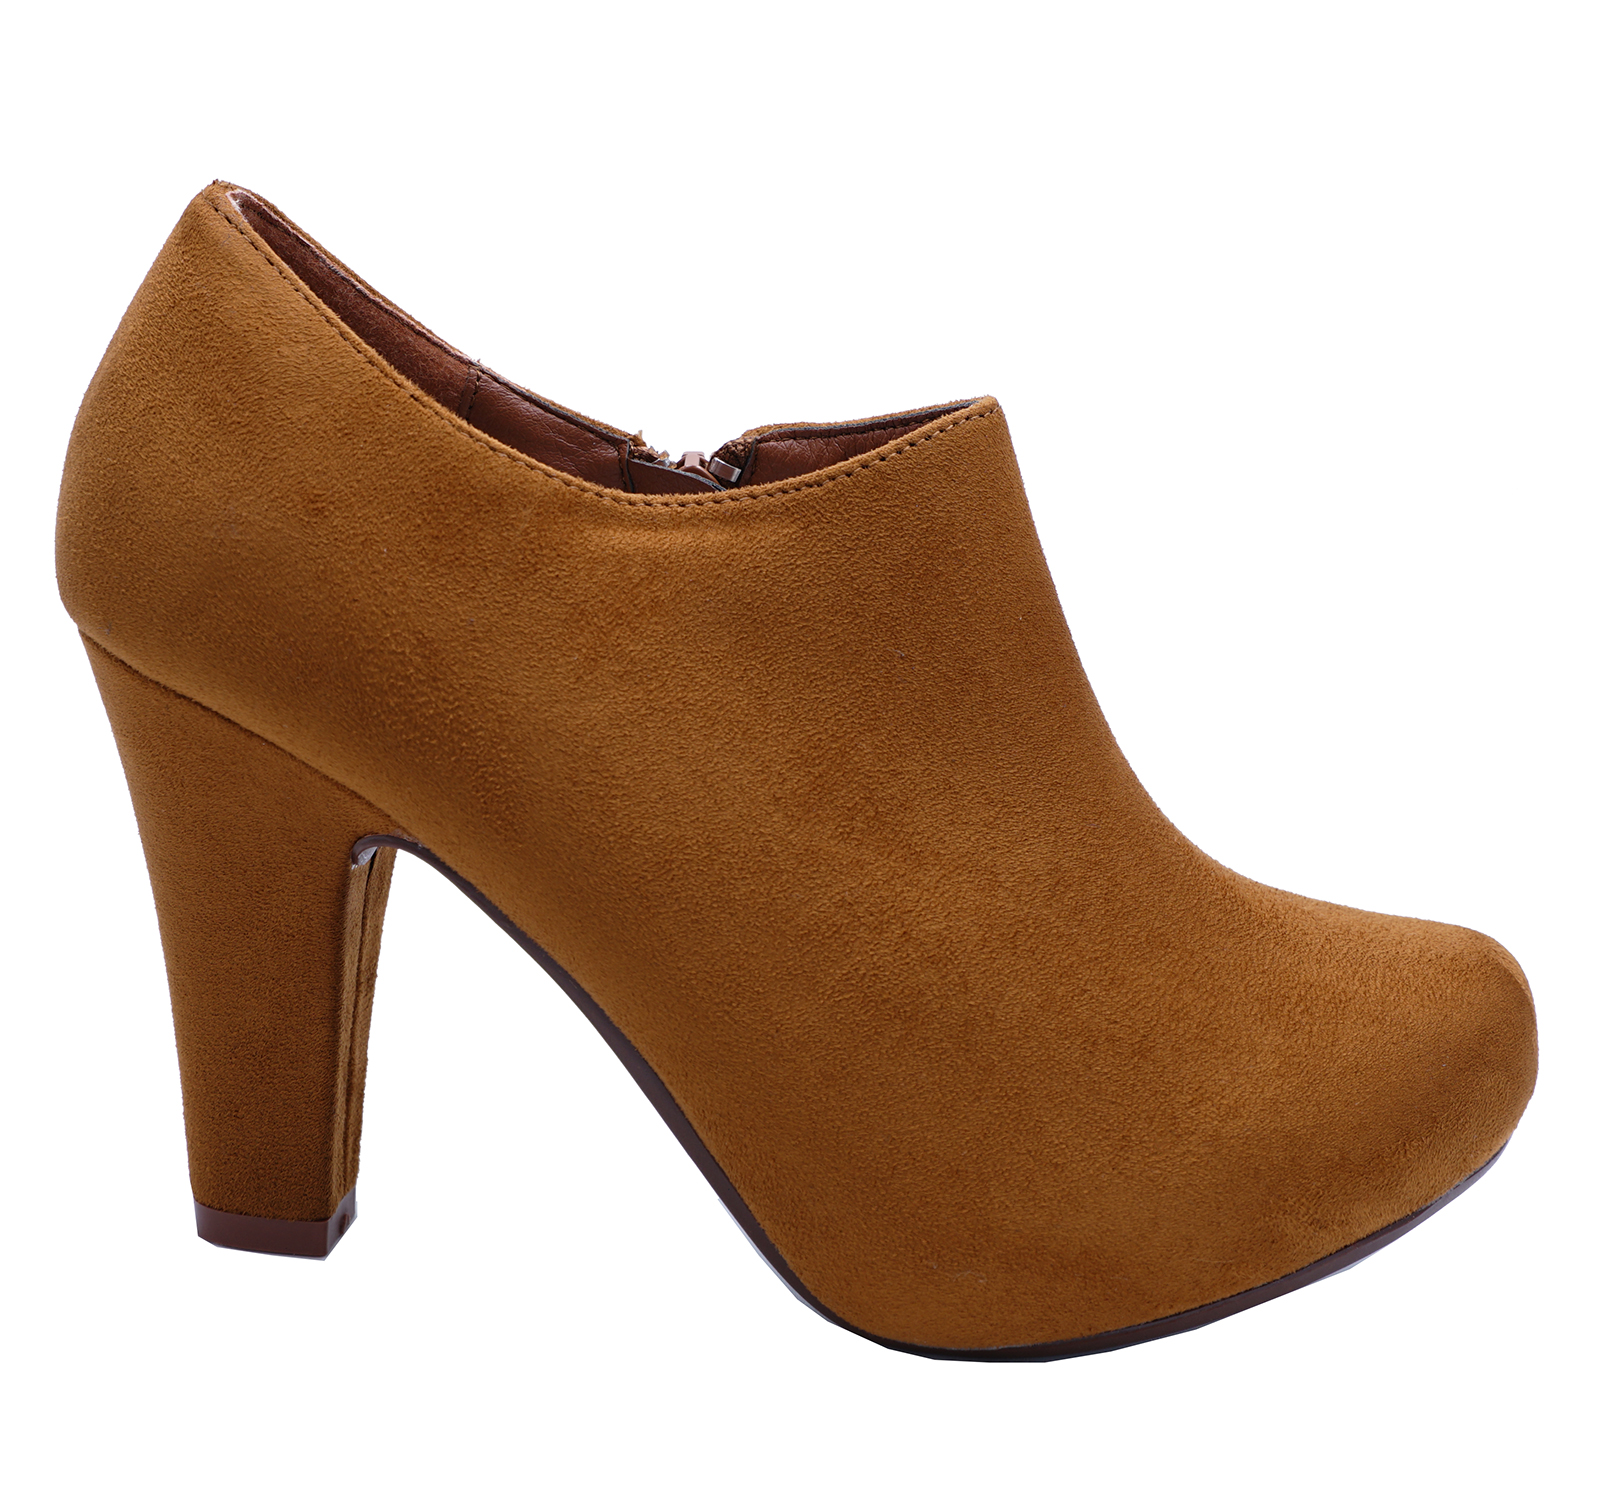 LADIES TAN ZIP-UP SMART CASUAL WORK COMFY CHELSEA ANKLE BOOTS SHOES SIZES 2-7